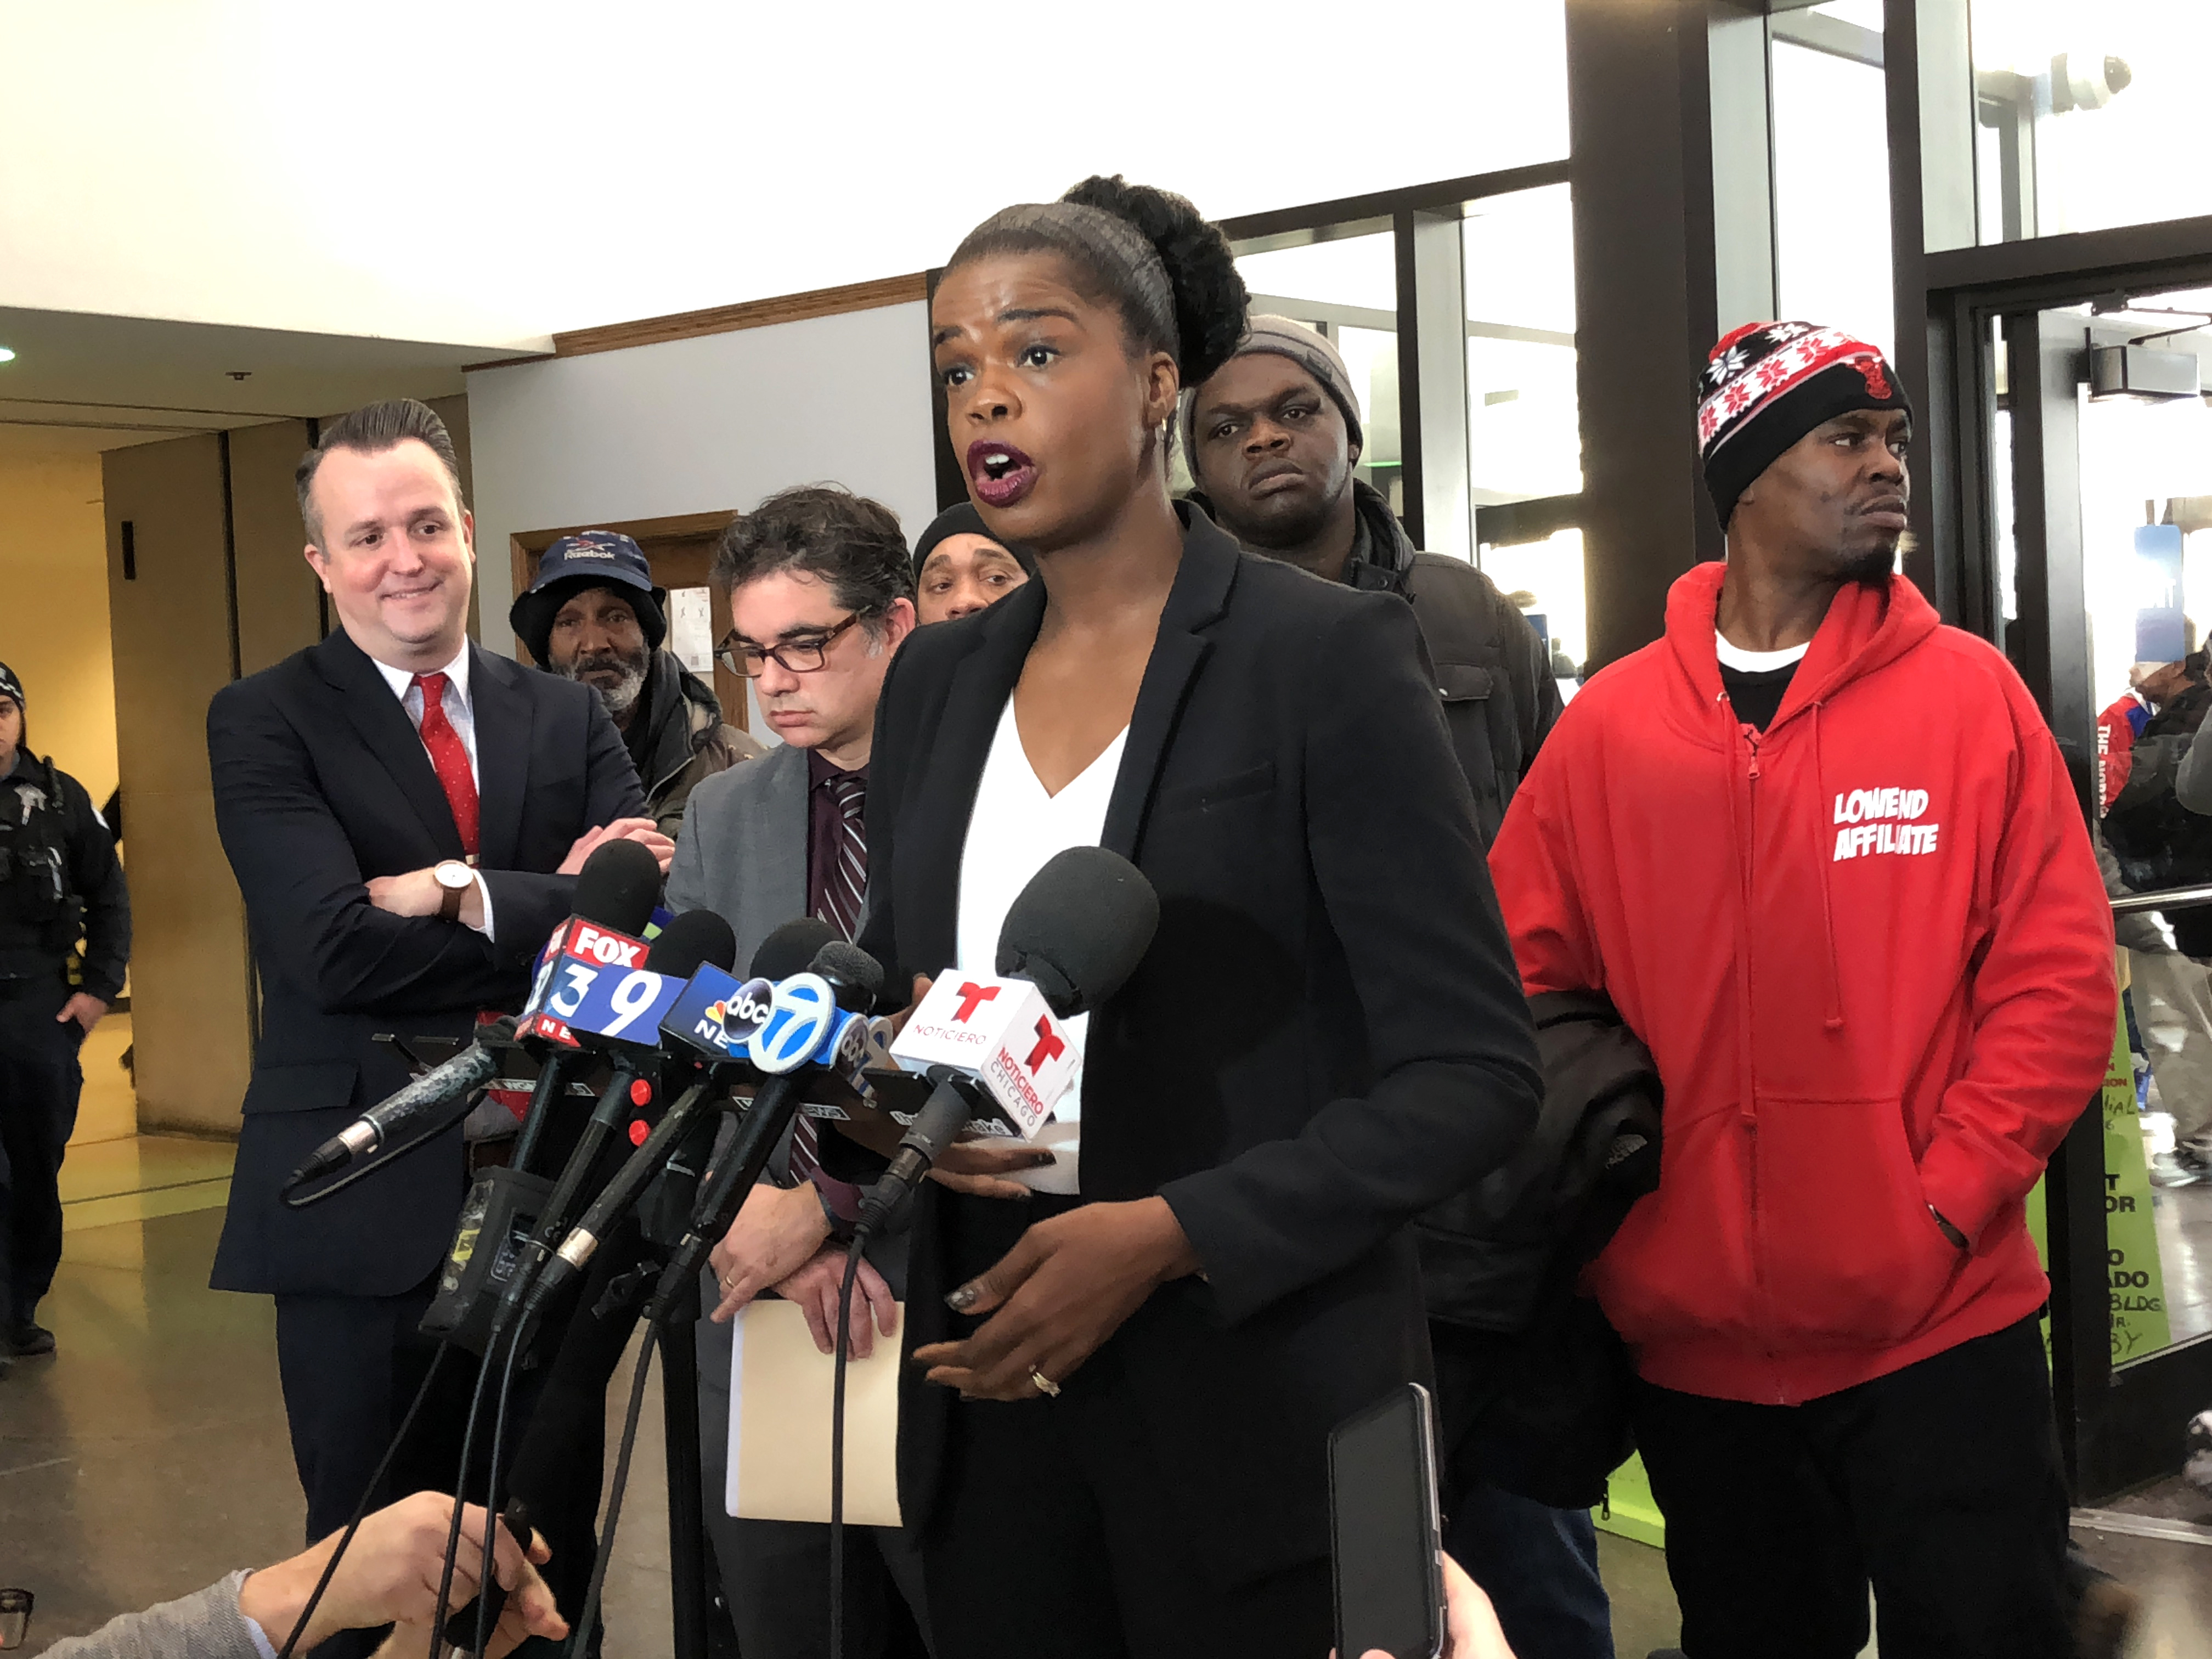 Cook County State's Attorney Kim Foxx talks to reporters Tuesday, Feb. 11, 2020, after an exoneration hearing in cases connected to corrupt former Chicago Police Sgt. Ronald Watts.